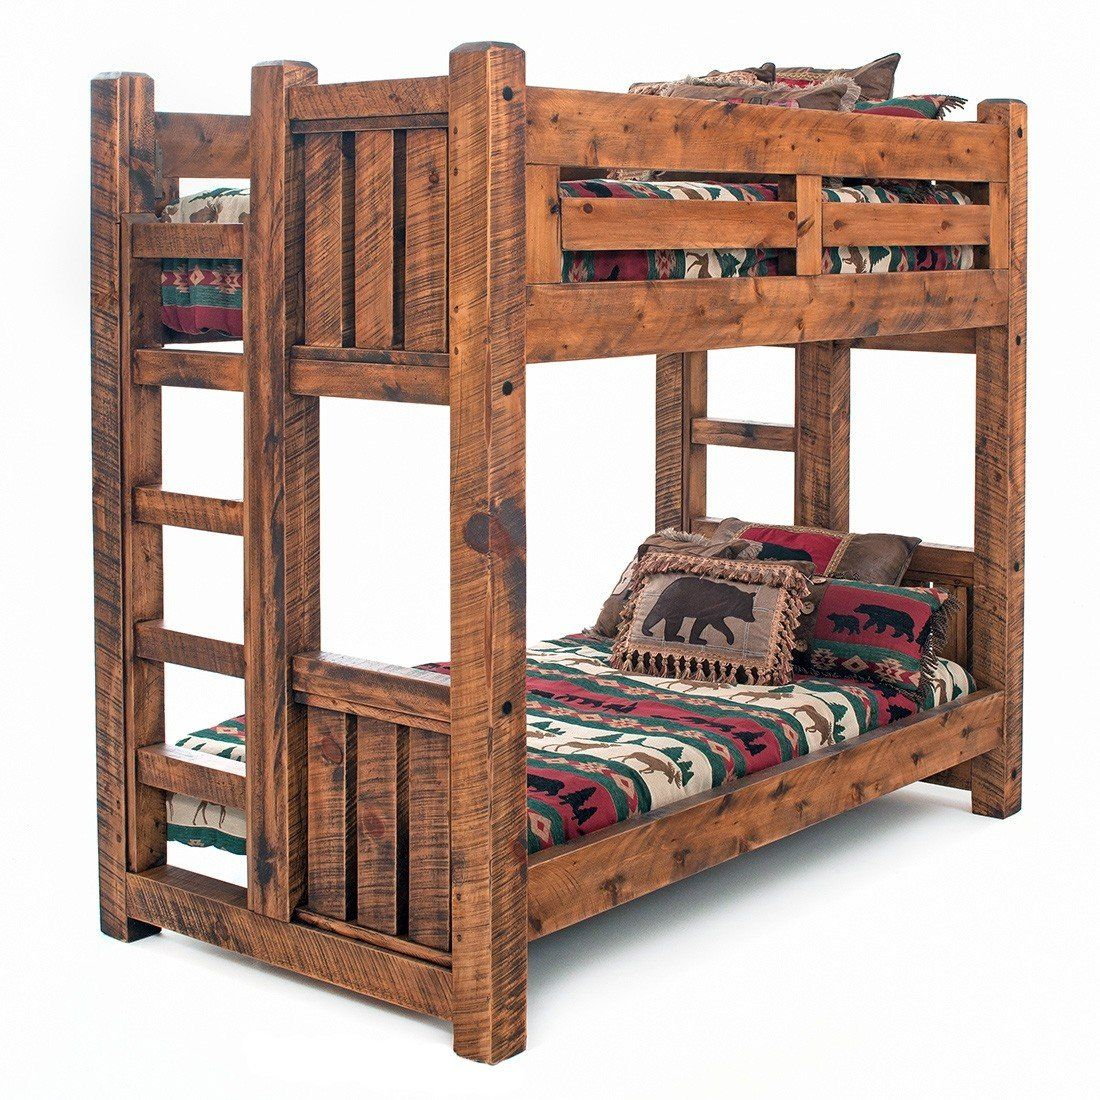 Sawmill Rough Sawn Timber Bunk Bed Rustic Furniture Design Wood